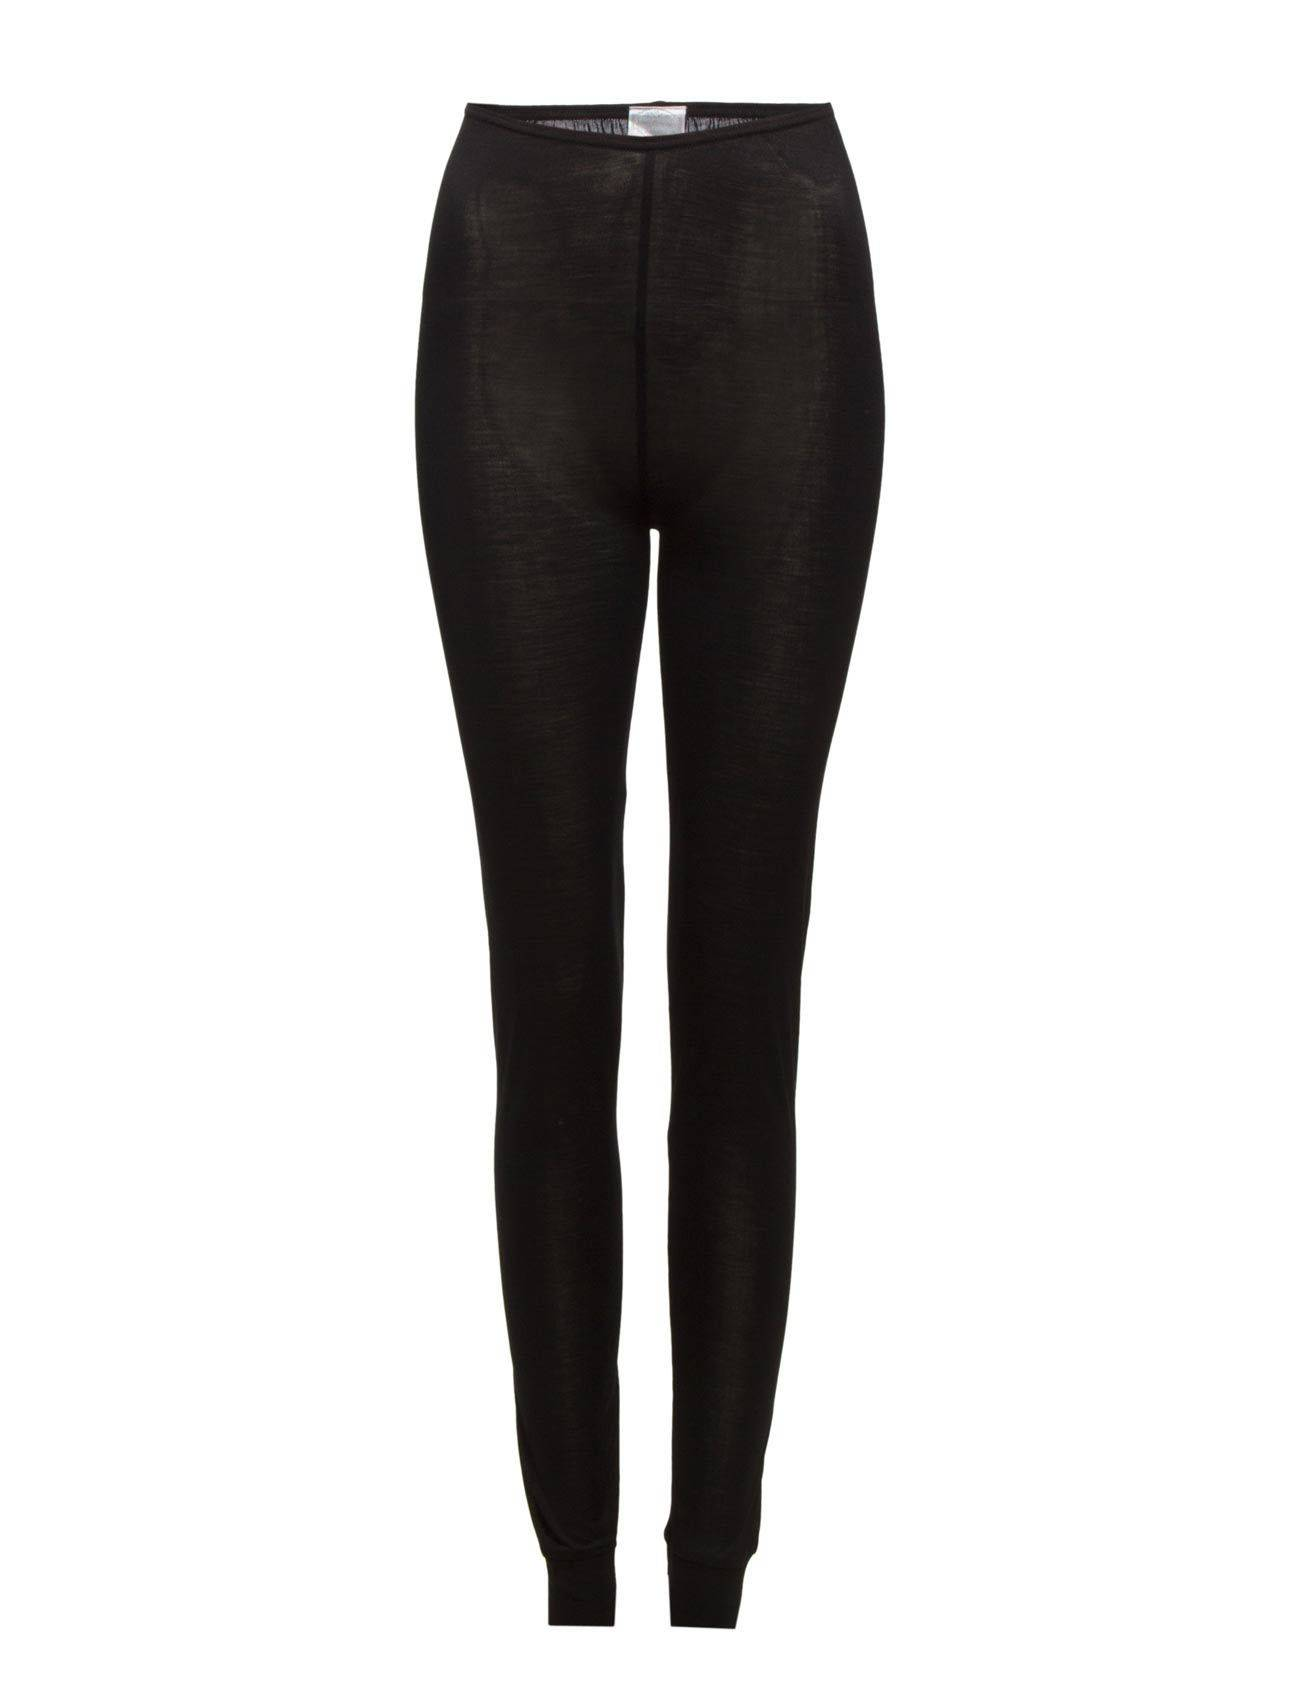 Lady Avenue Long Tights